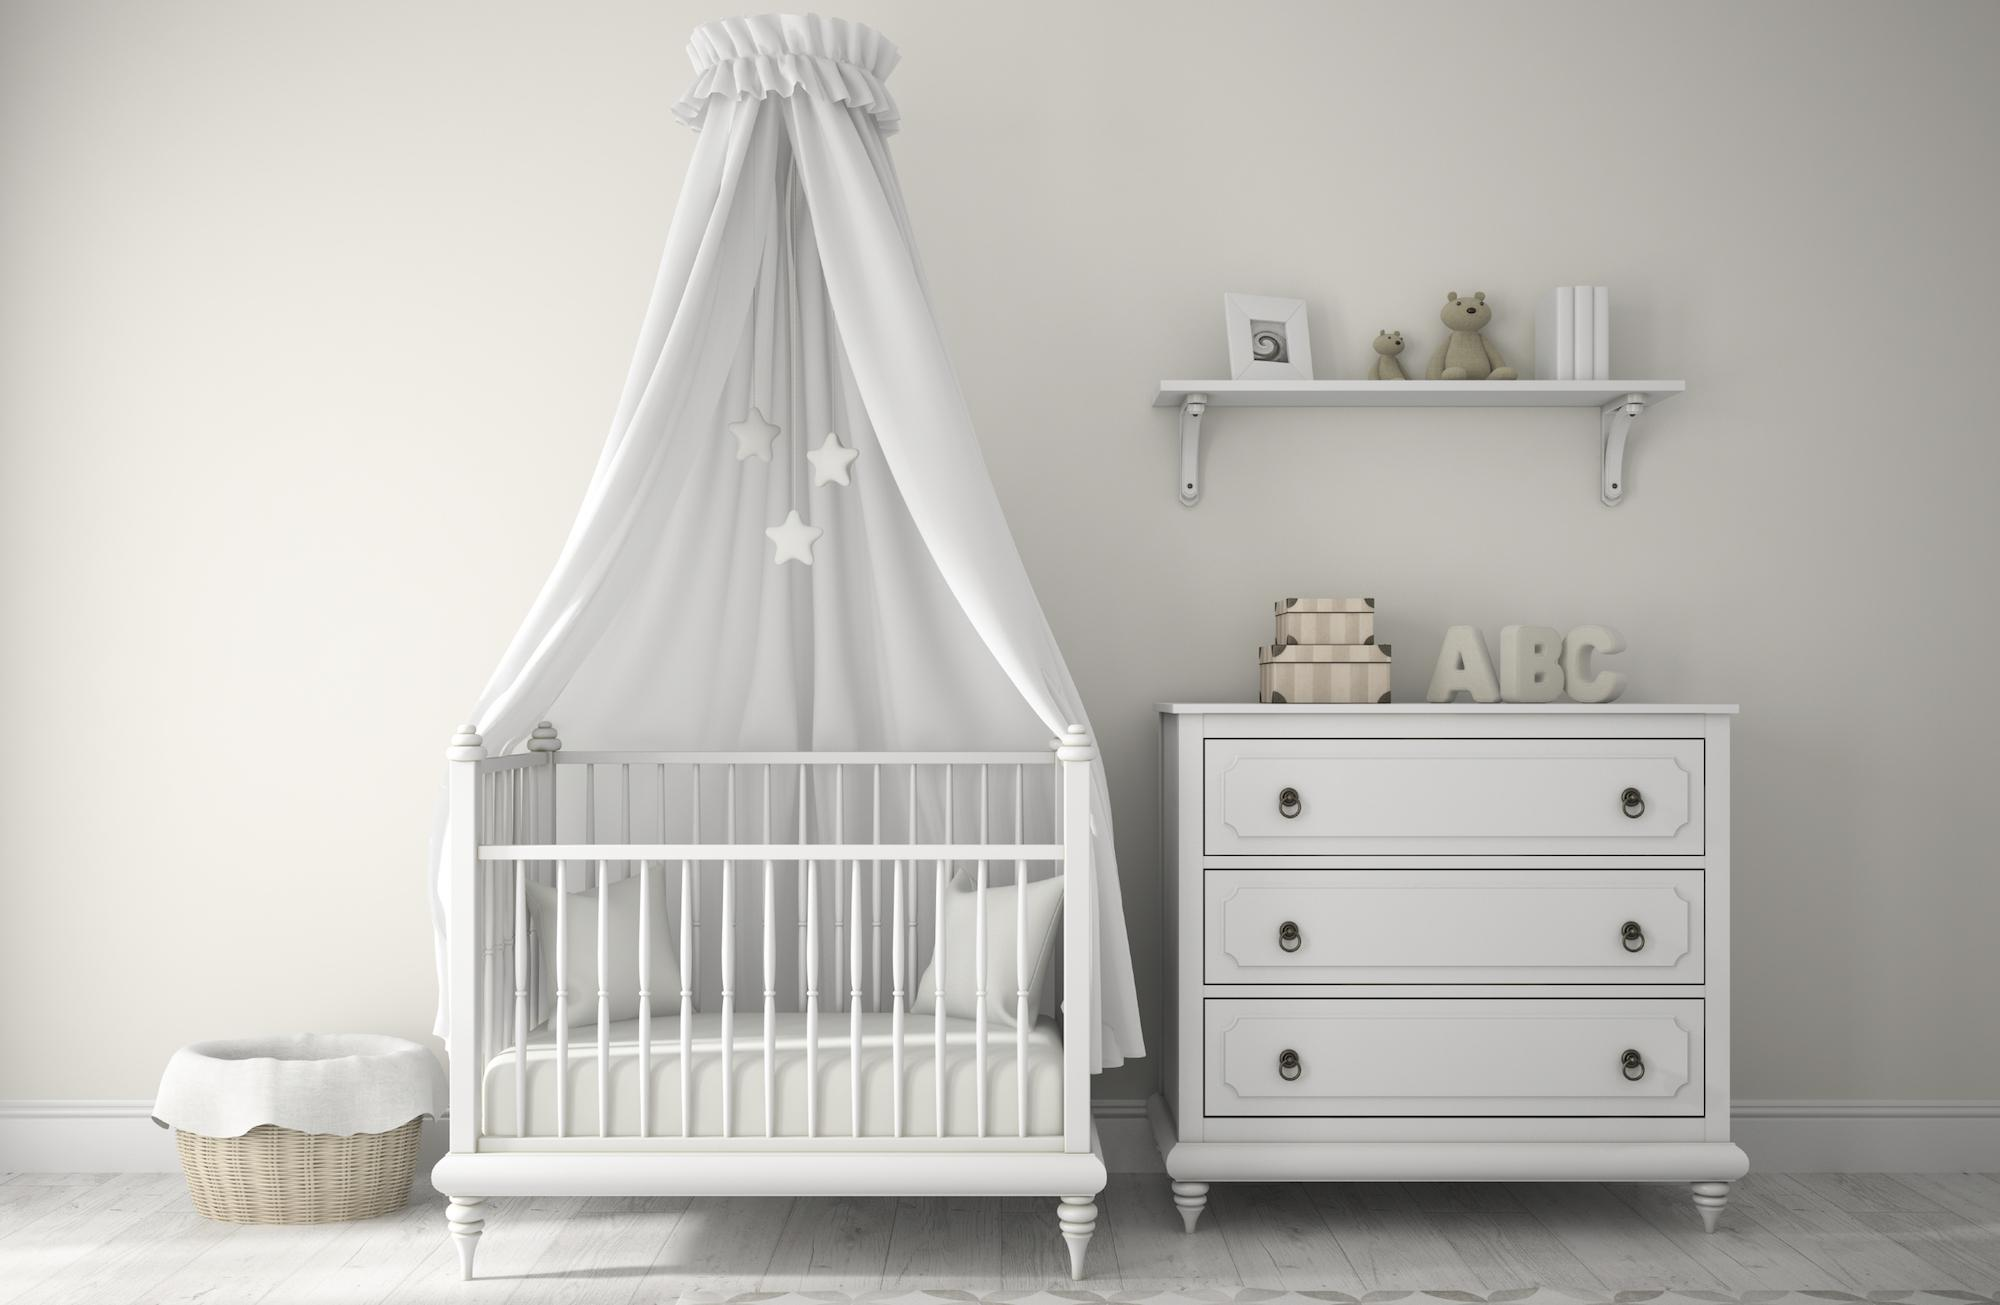 stylische kinder babyzimmer. Black Bedroom Furniture Sets. Home Design Ideas